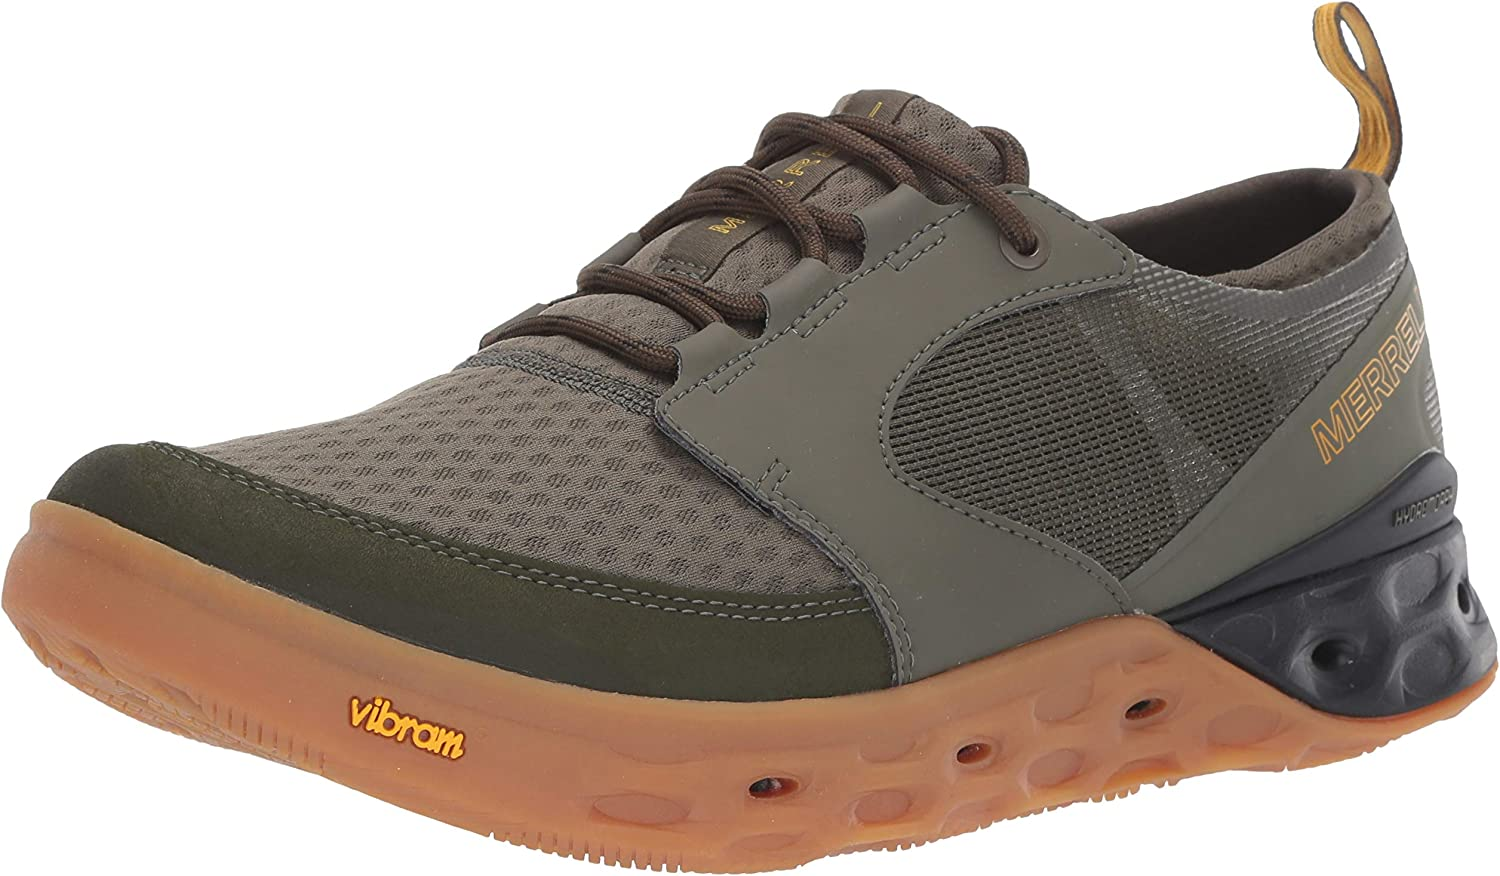 Merrell Men's TIDERISER LACE Water schuhe Olive 11.0 M US